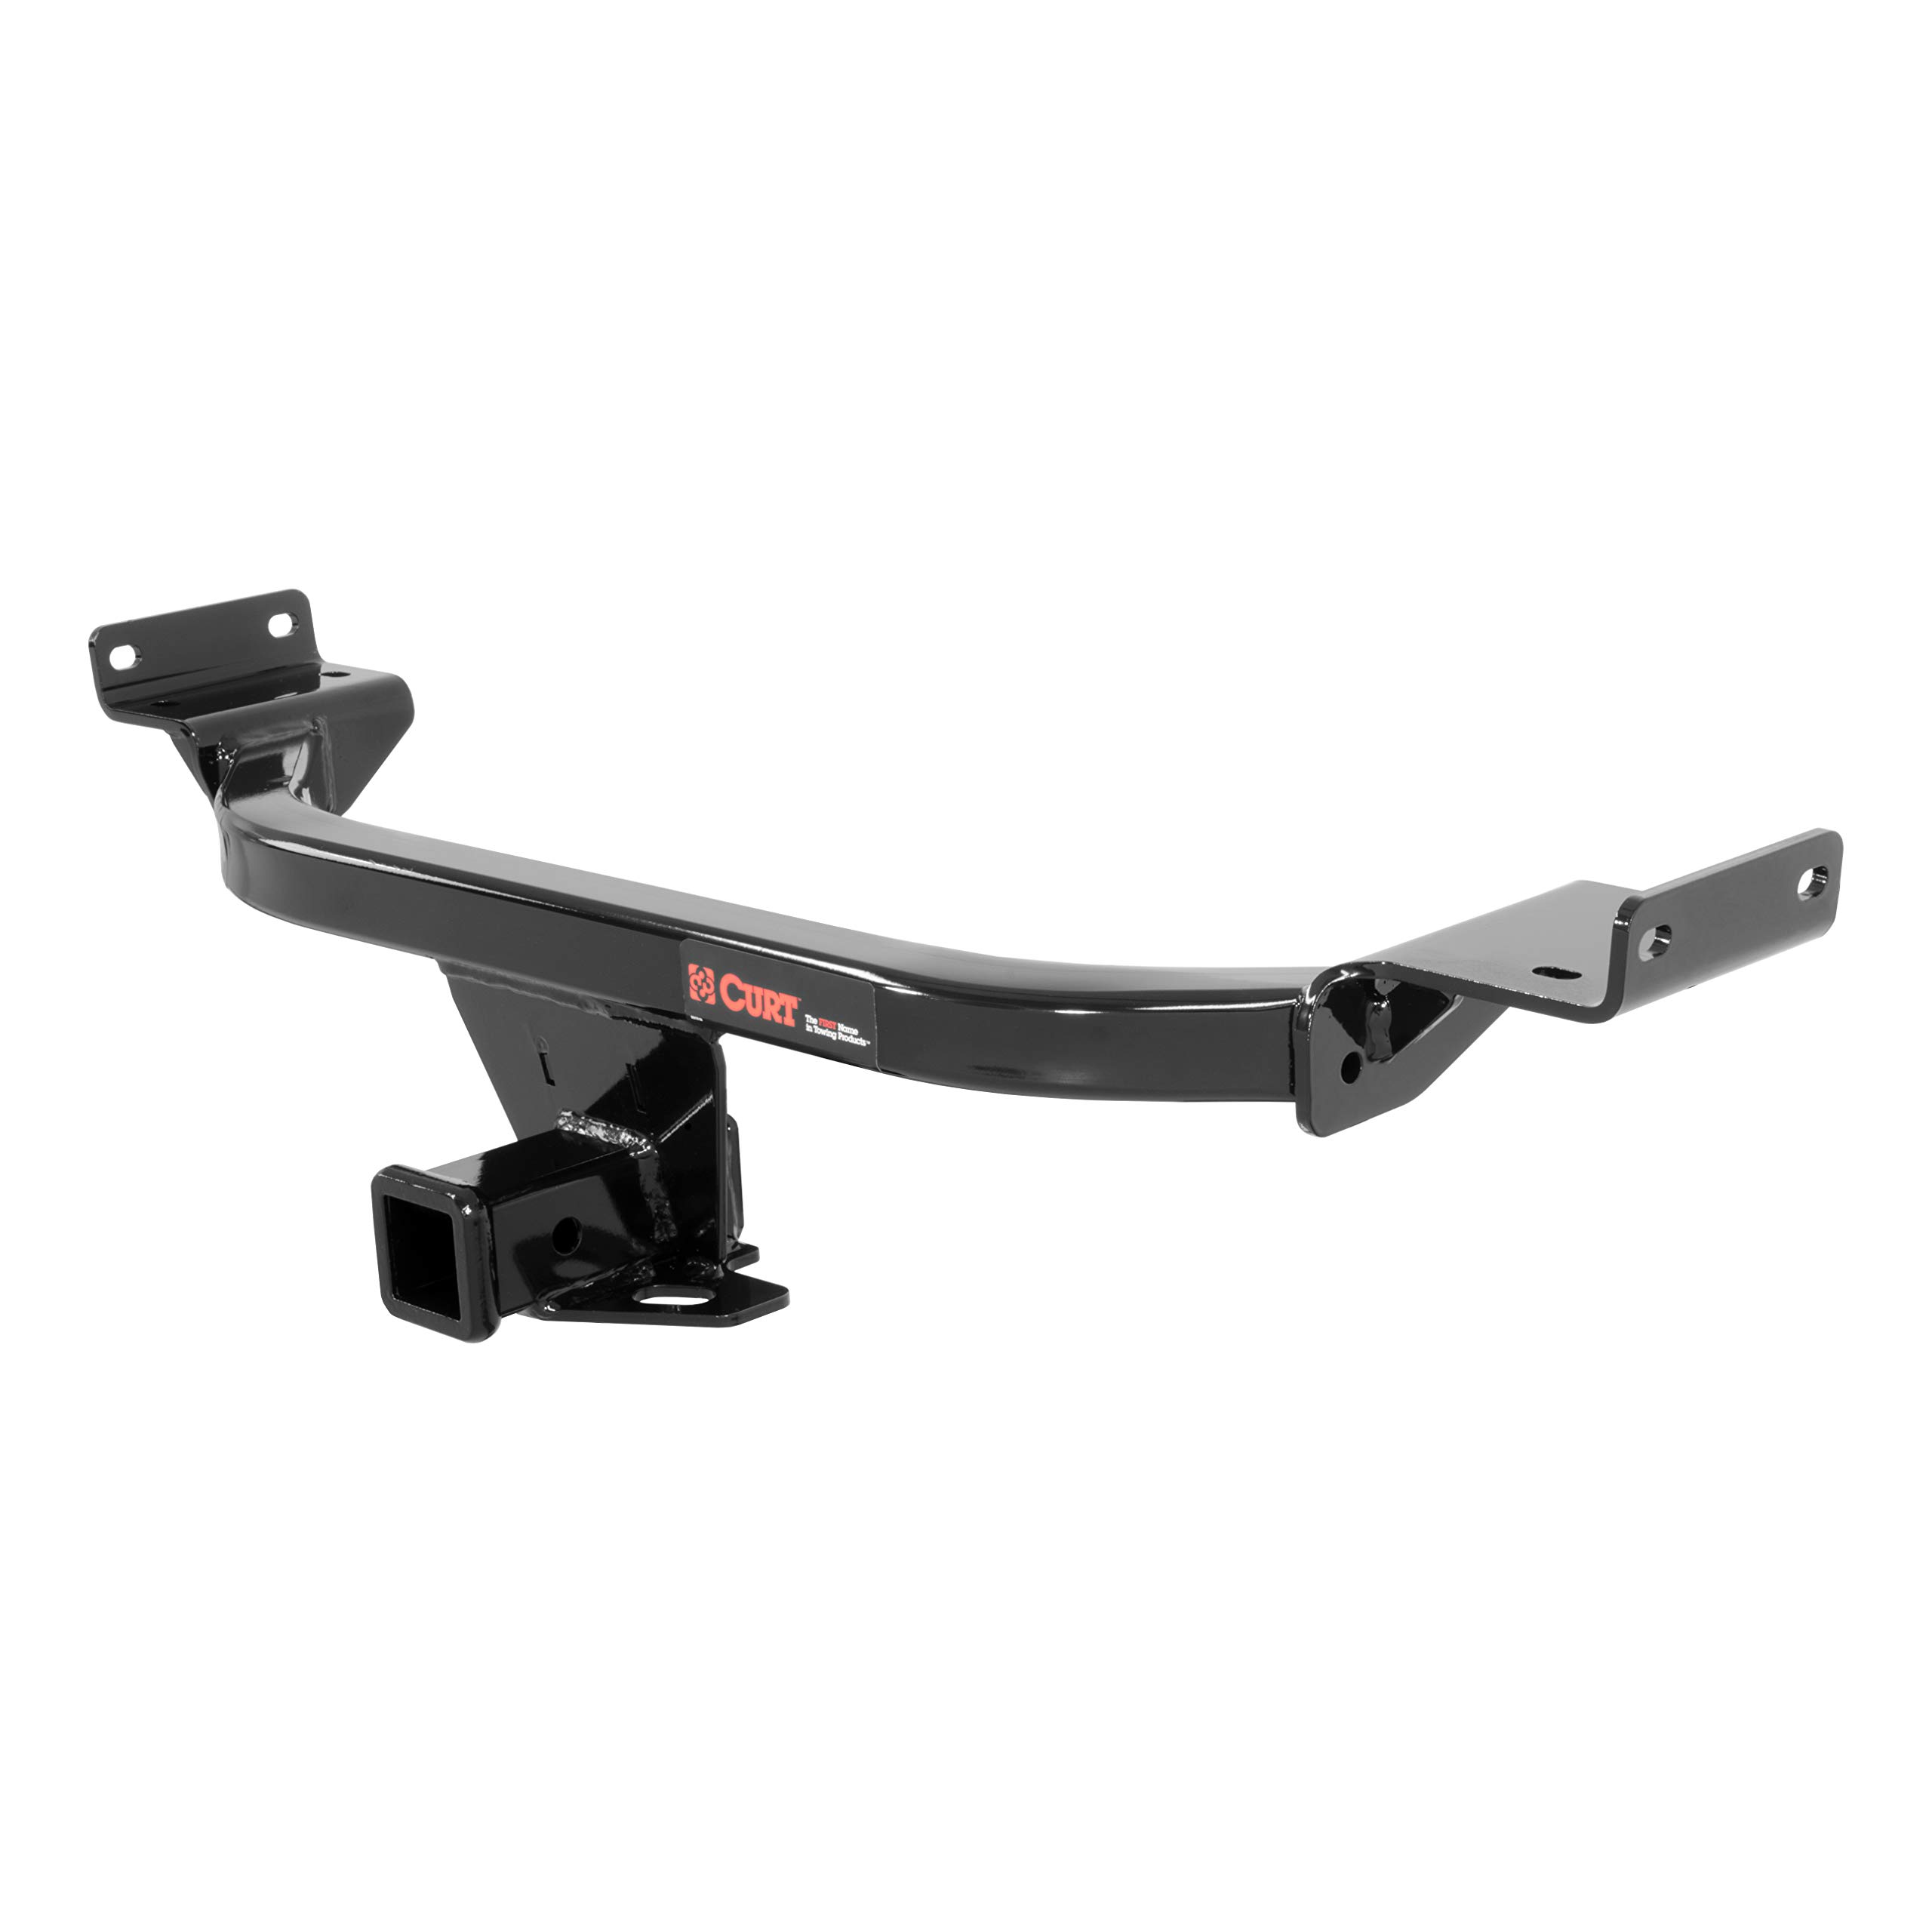 CURT 13281 Class 3 Trailer Hitch, 2-Inch Receiver for Select Kia Sportage by CURT